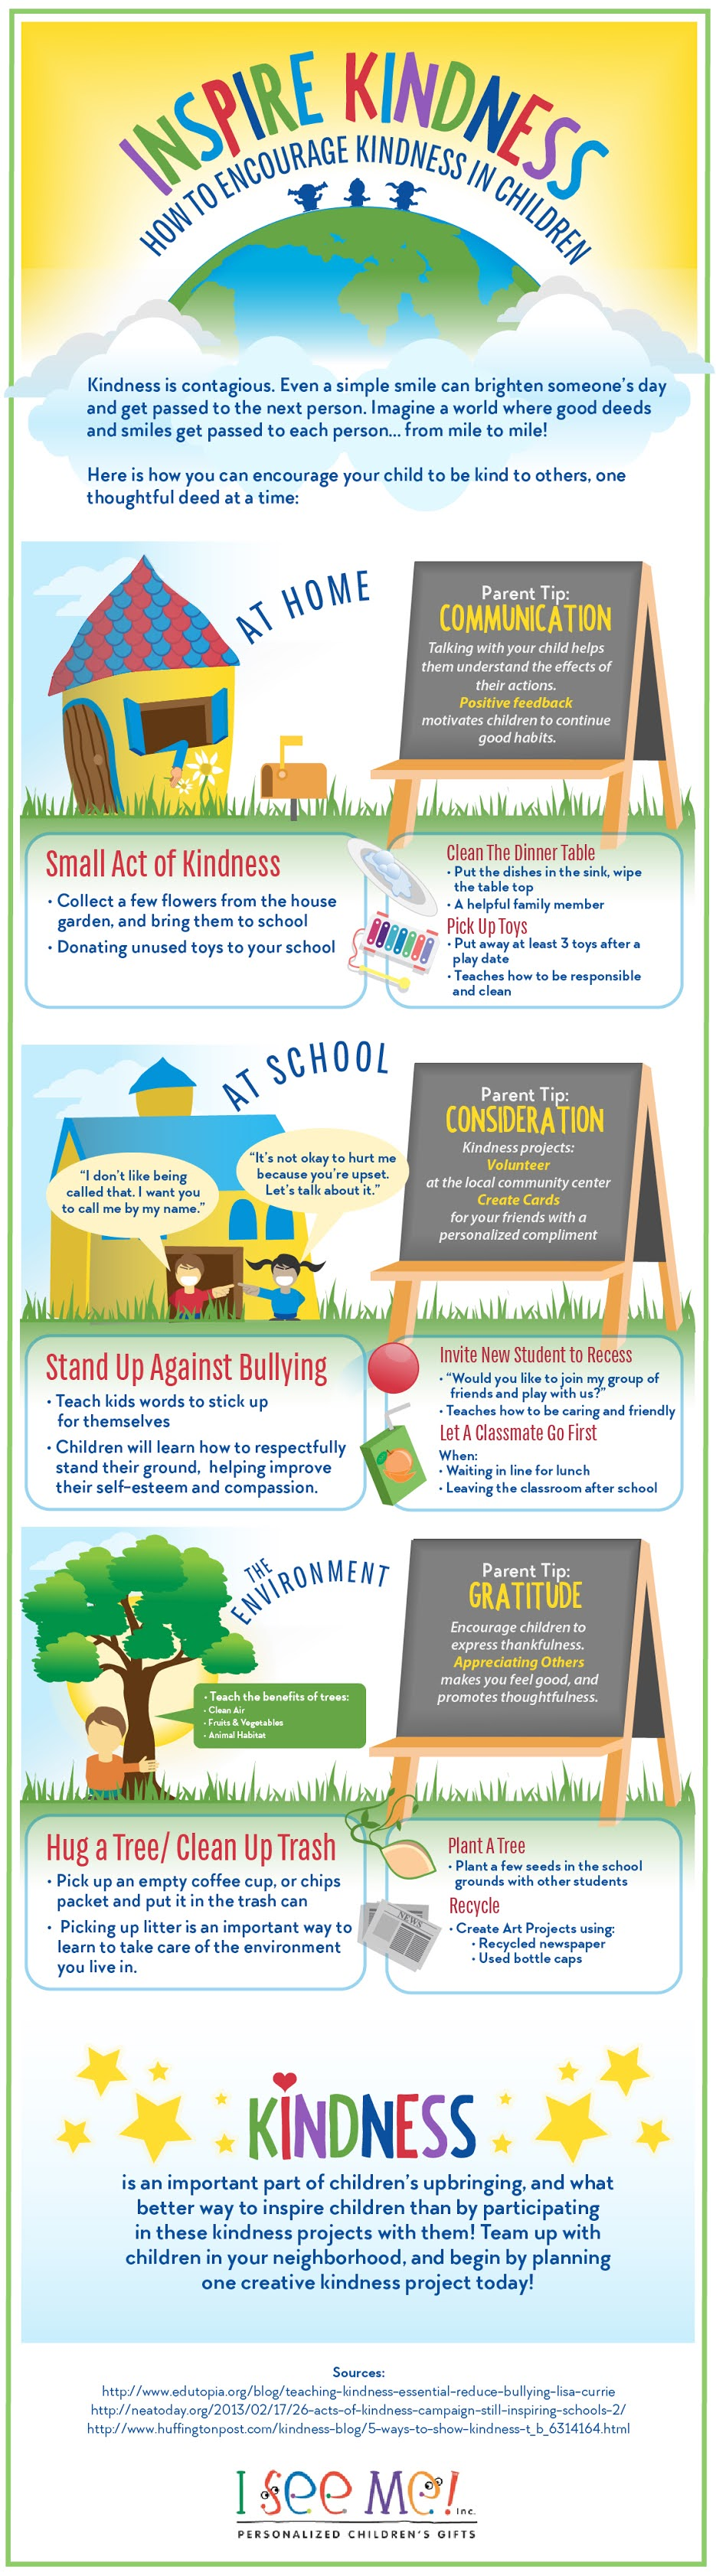 How to Encourage Kindness in Children #infographic